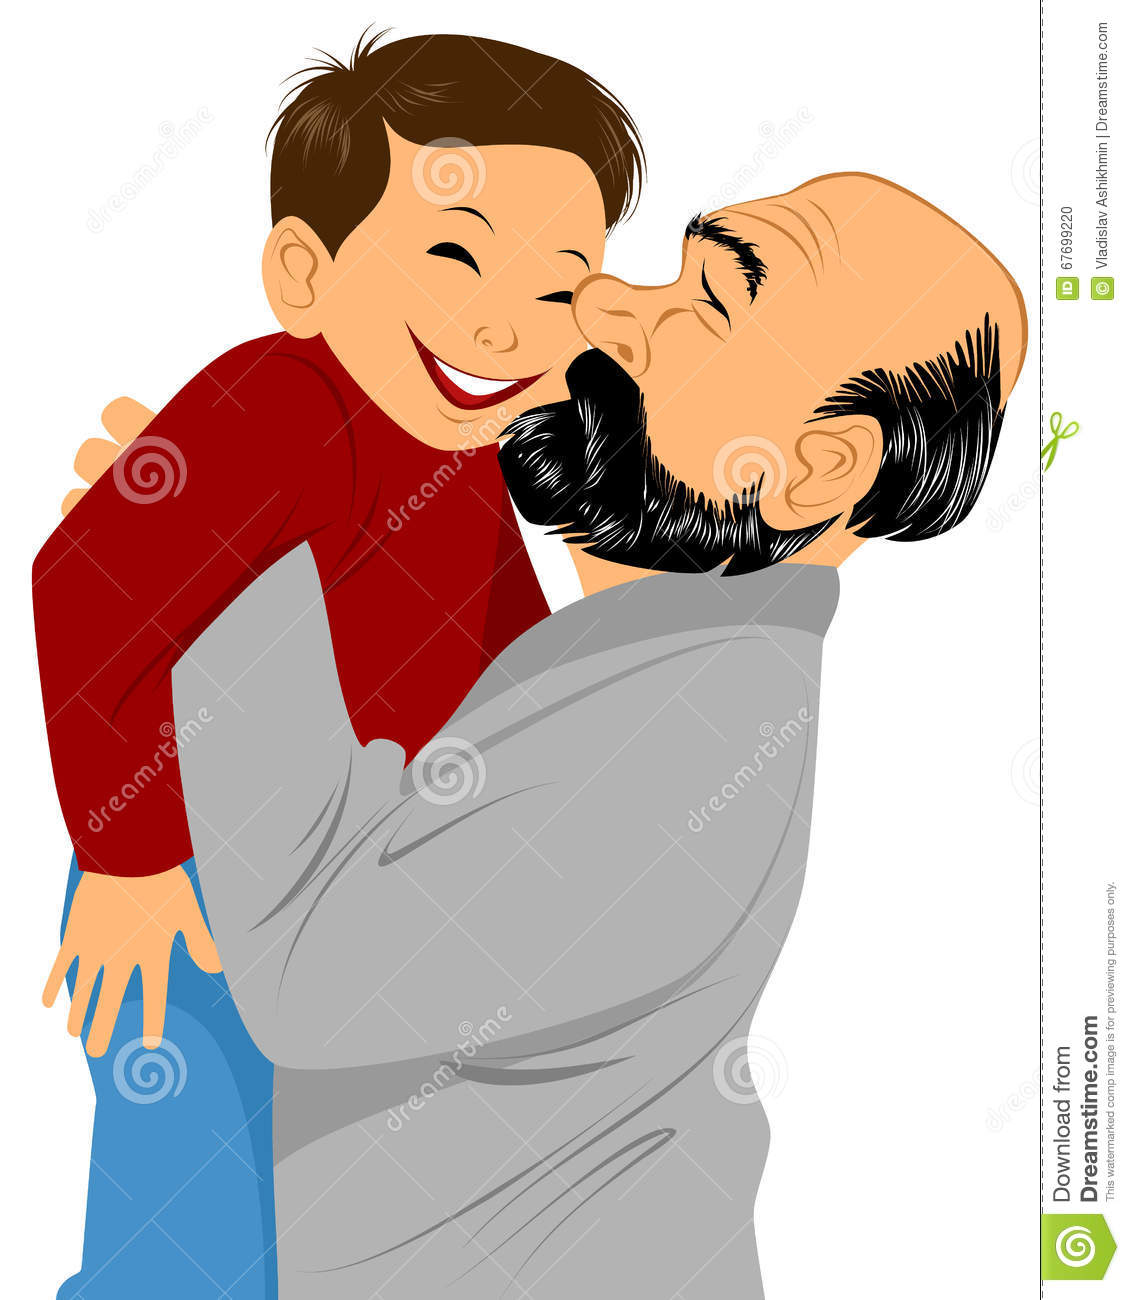 Happy Family Portrait Of Boy And Grandpa Hugging Royalty ...